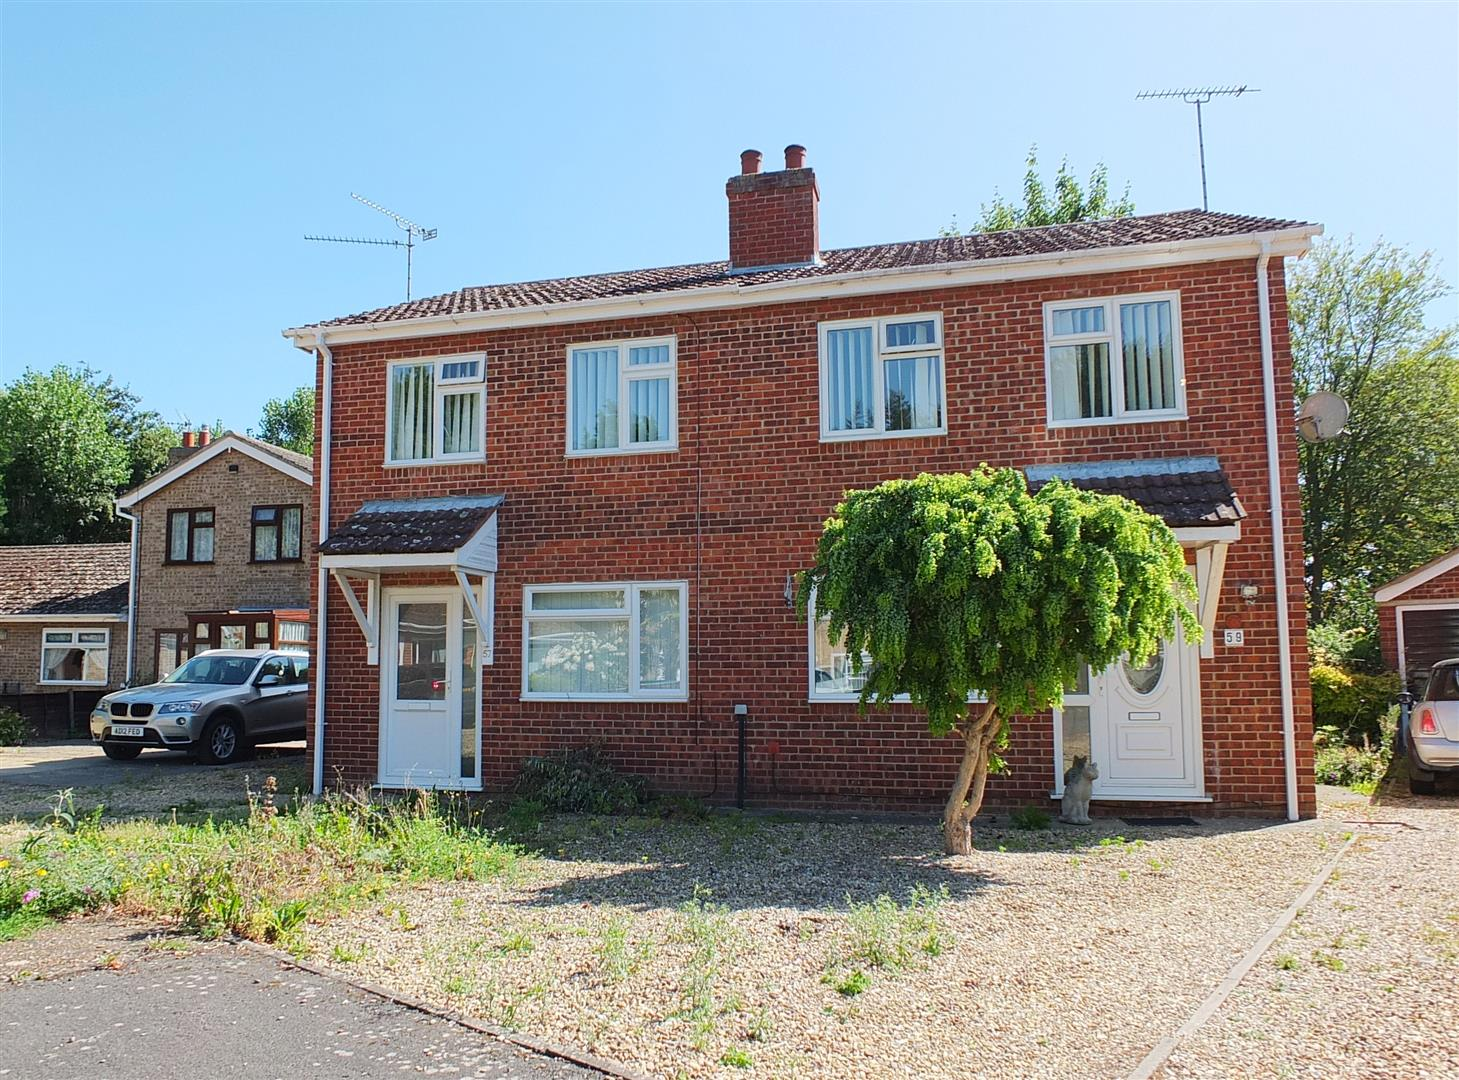 3 bed semi-detached house for sale in Nene Meadows, Sutton Bridge Spalding - Property Image 1